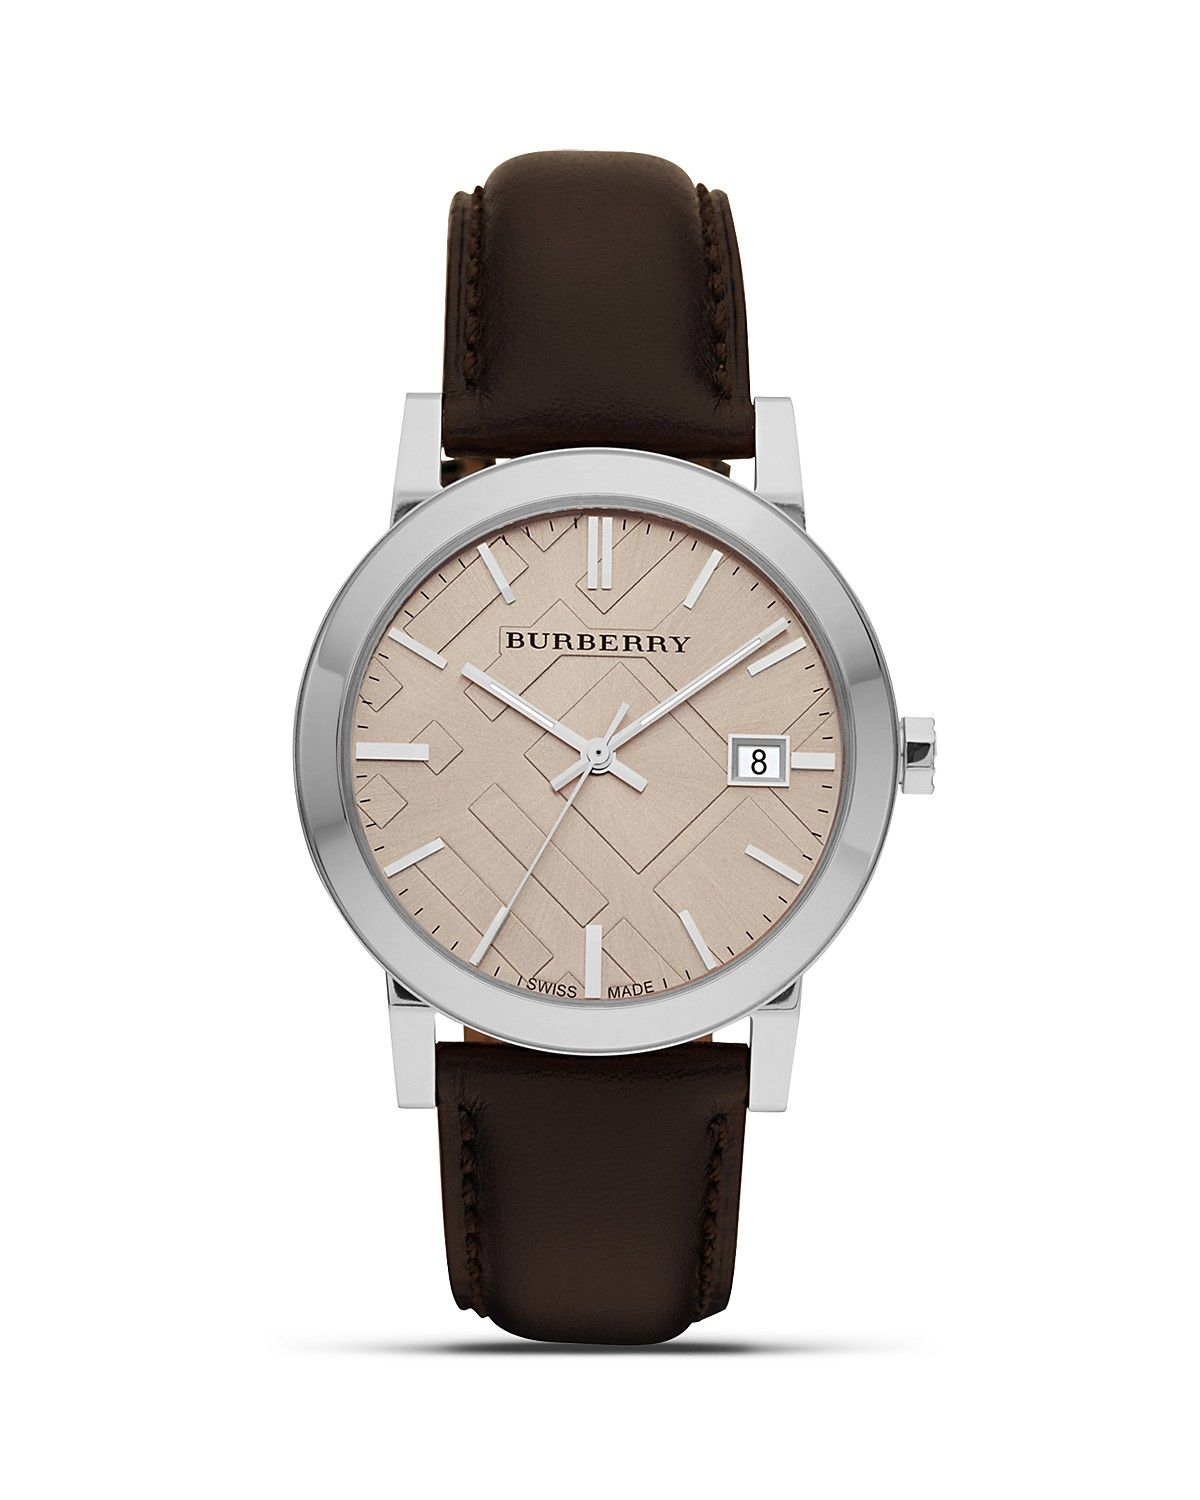 73f8e9e46be Burberry Leather Watch with Check Face